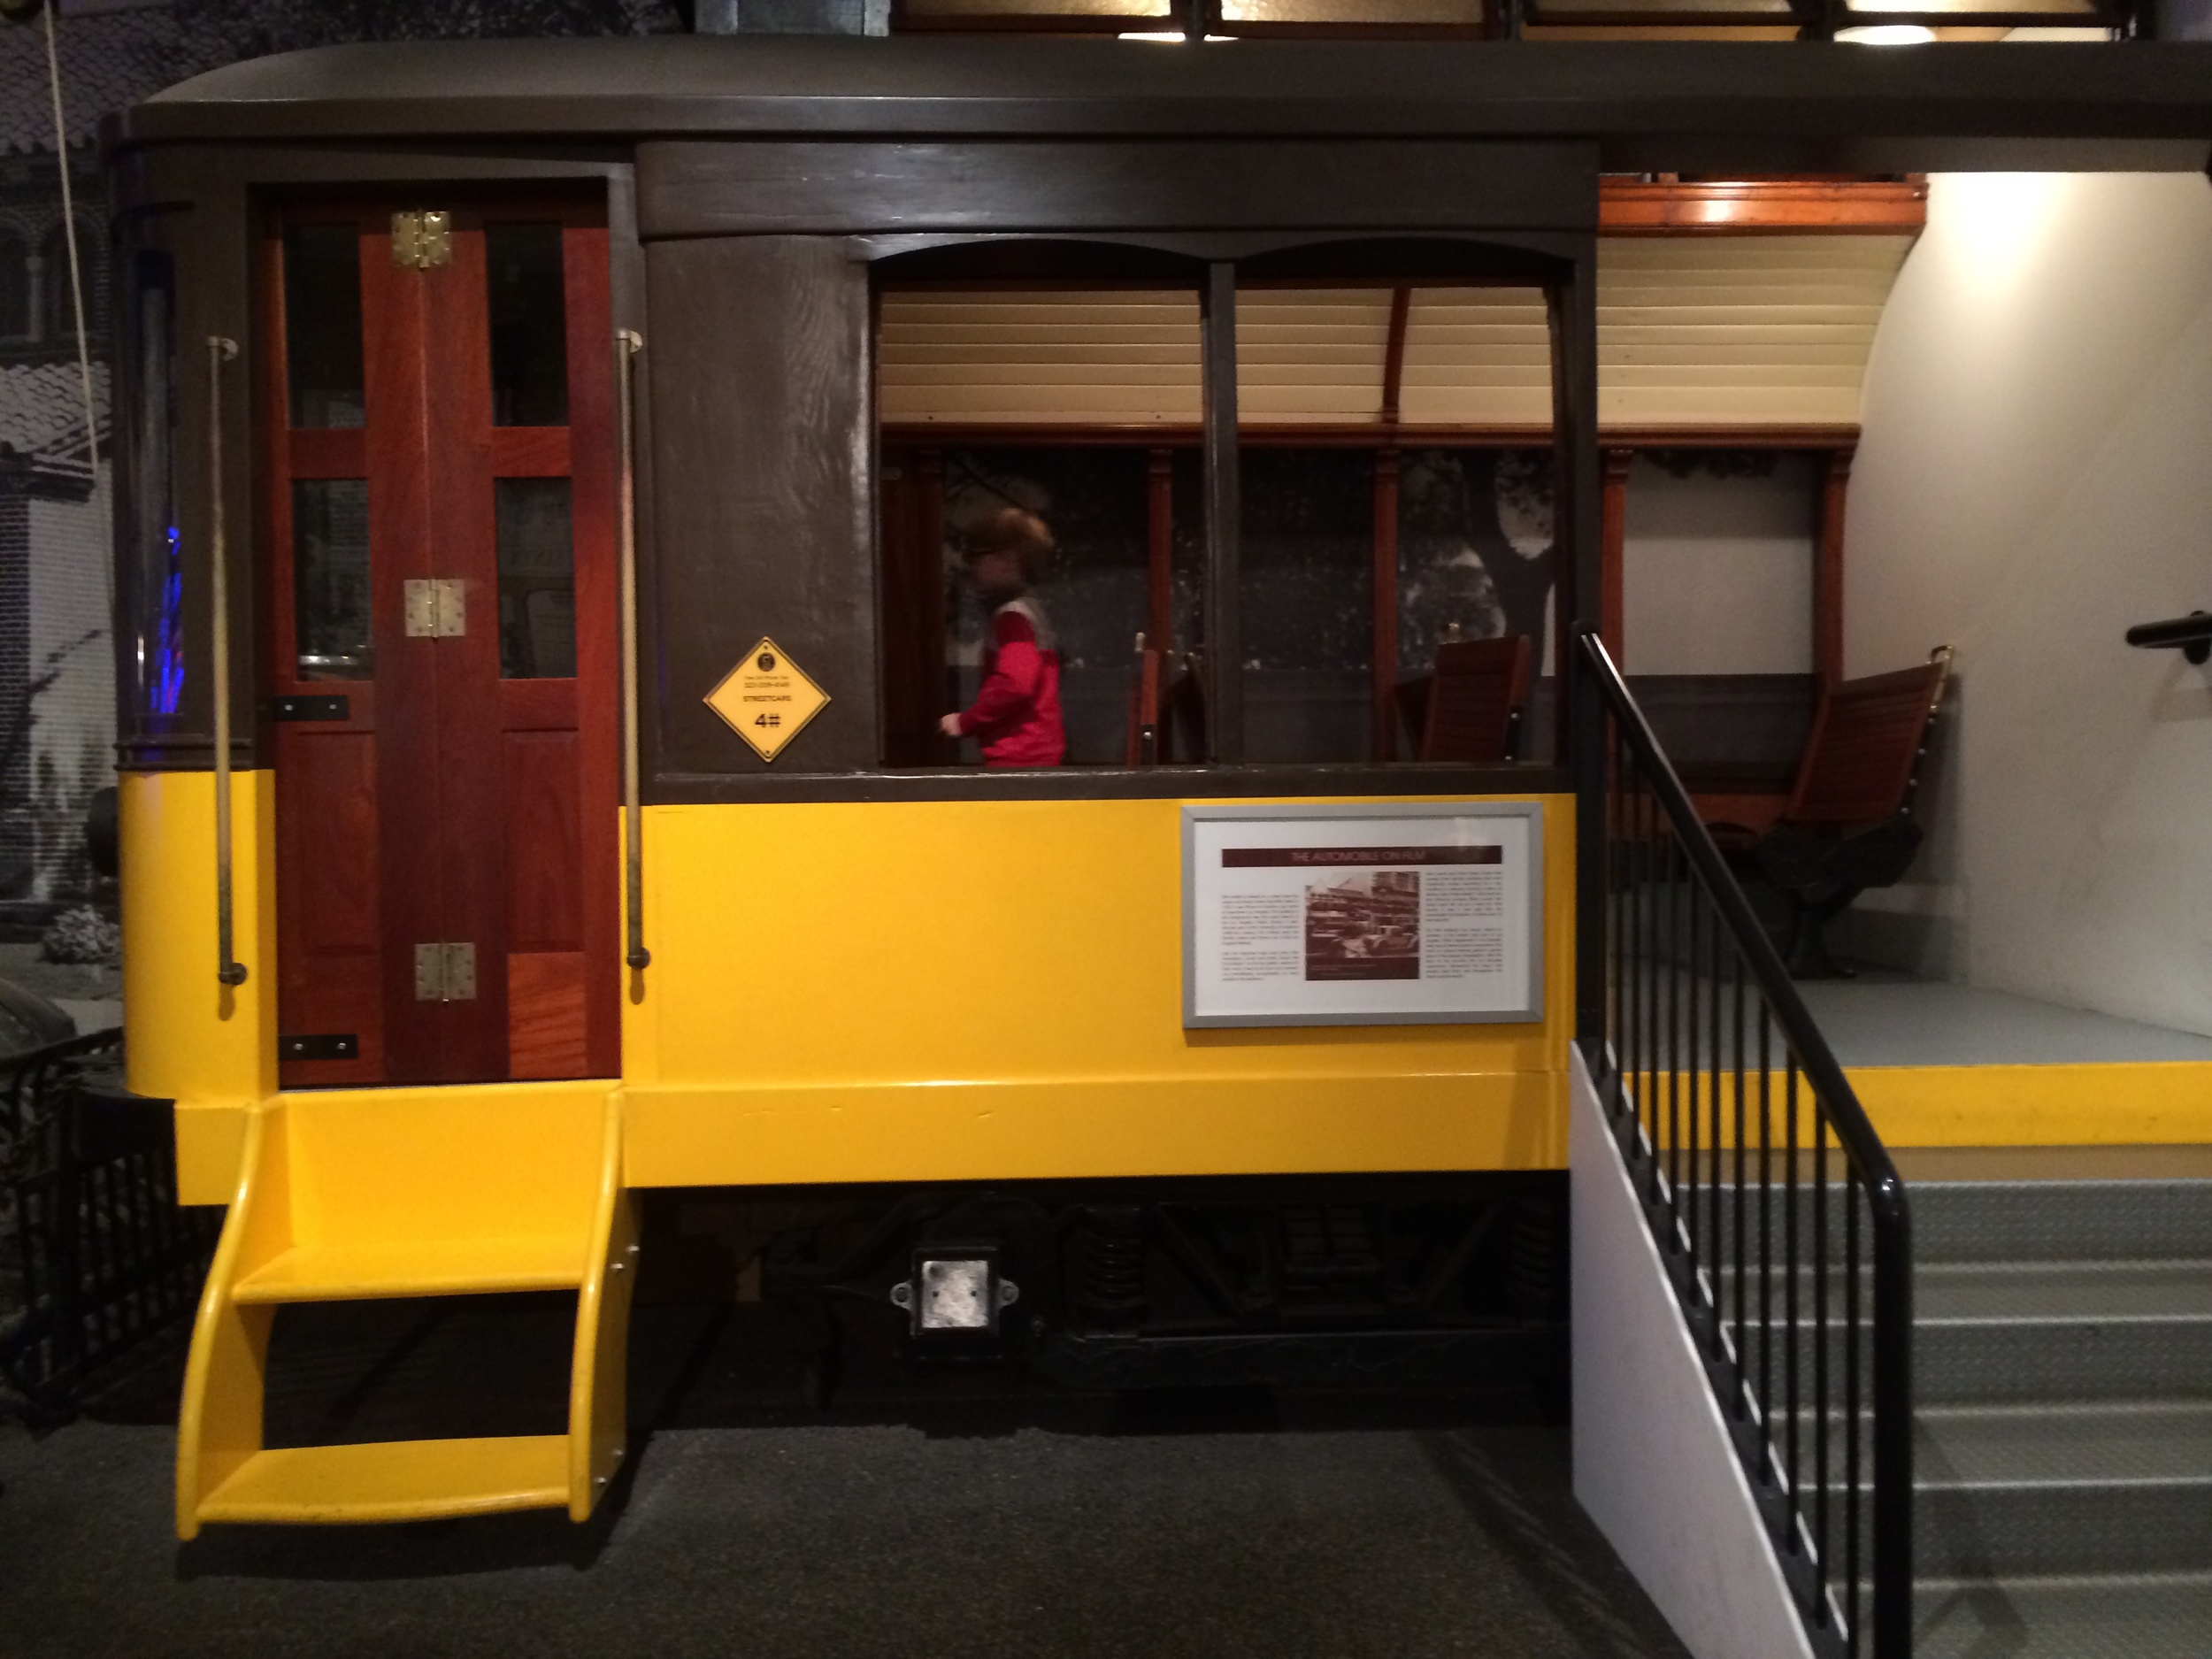 Elliot boards the first exhibit at the Petersen: an electric streetcar.